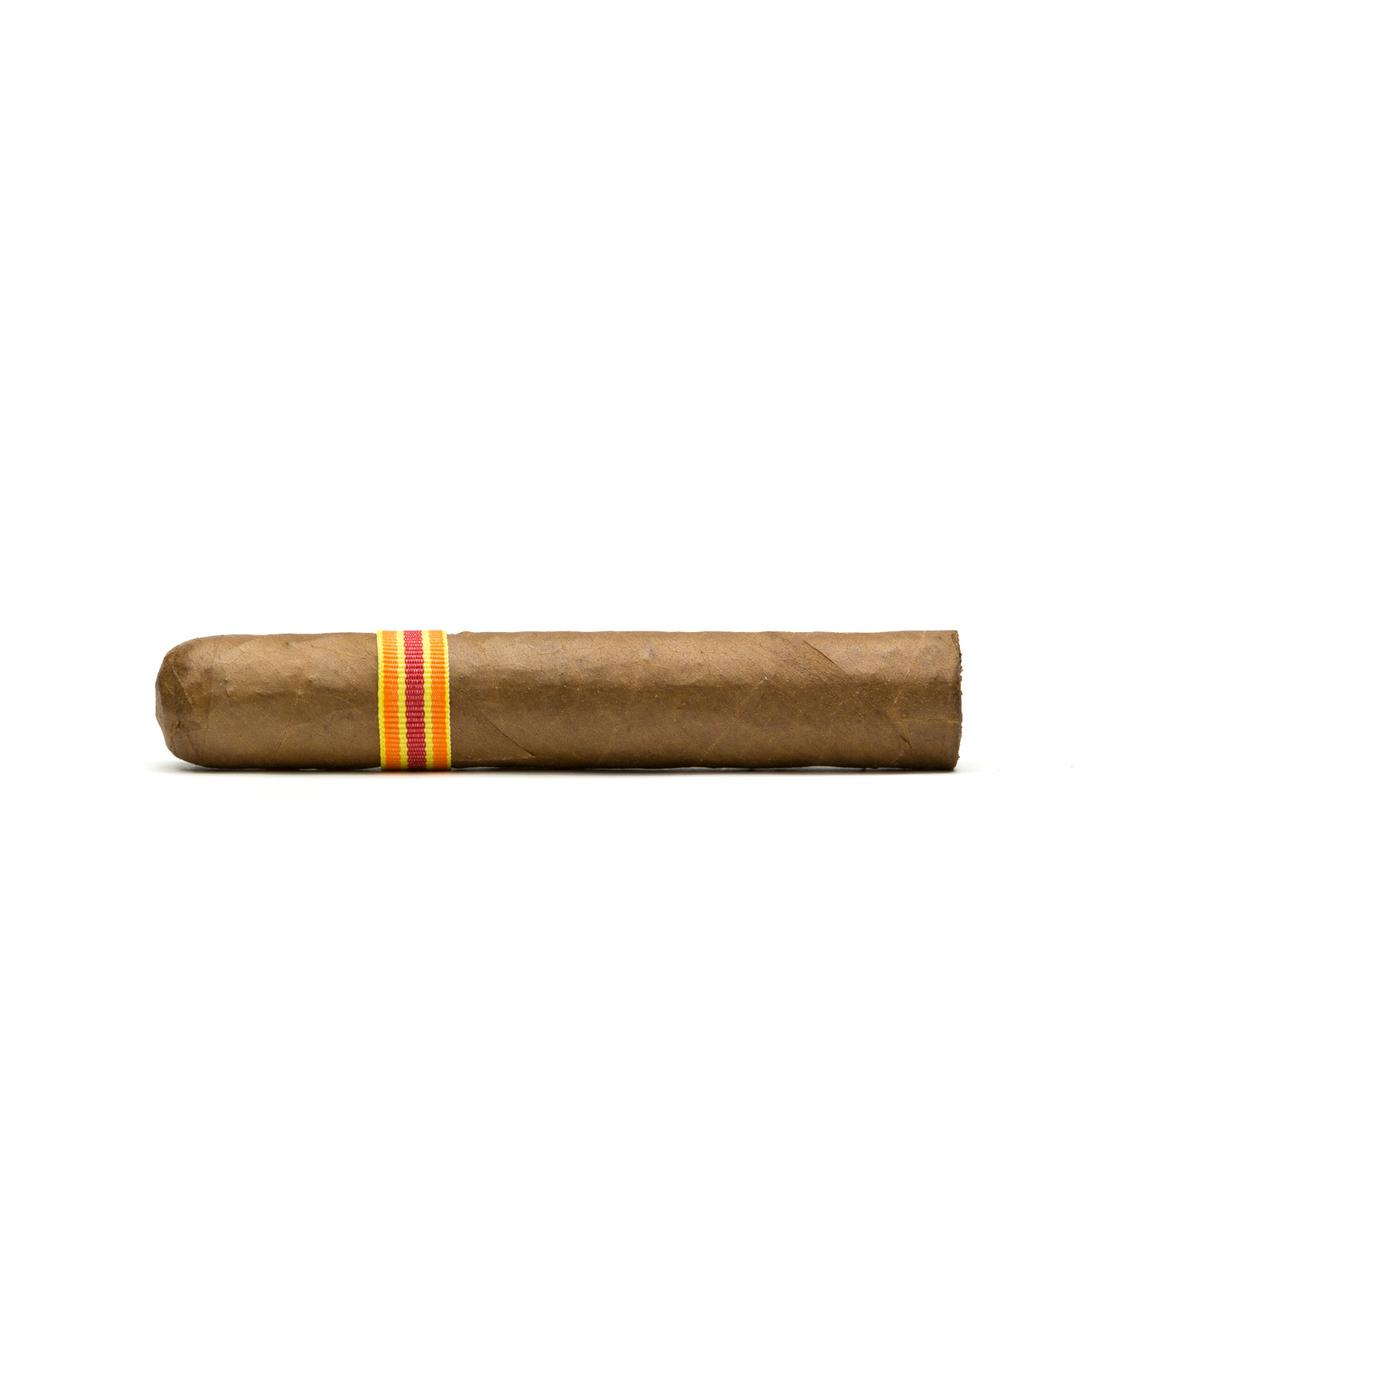 Oriente Limited Edition Robusto